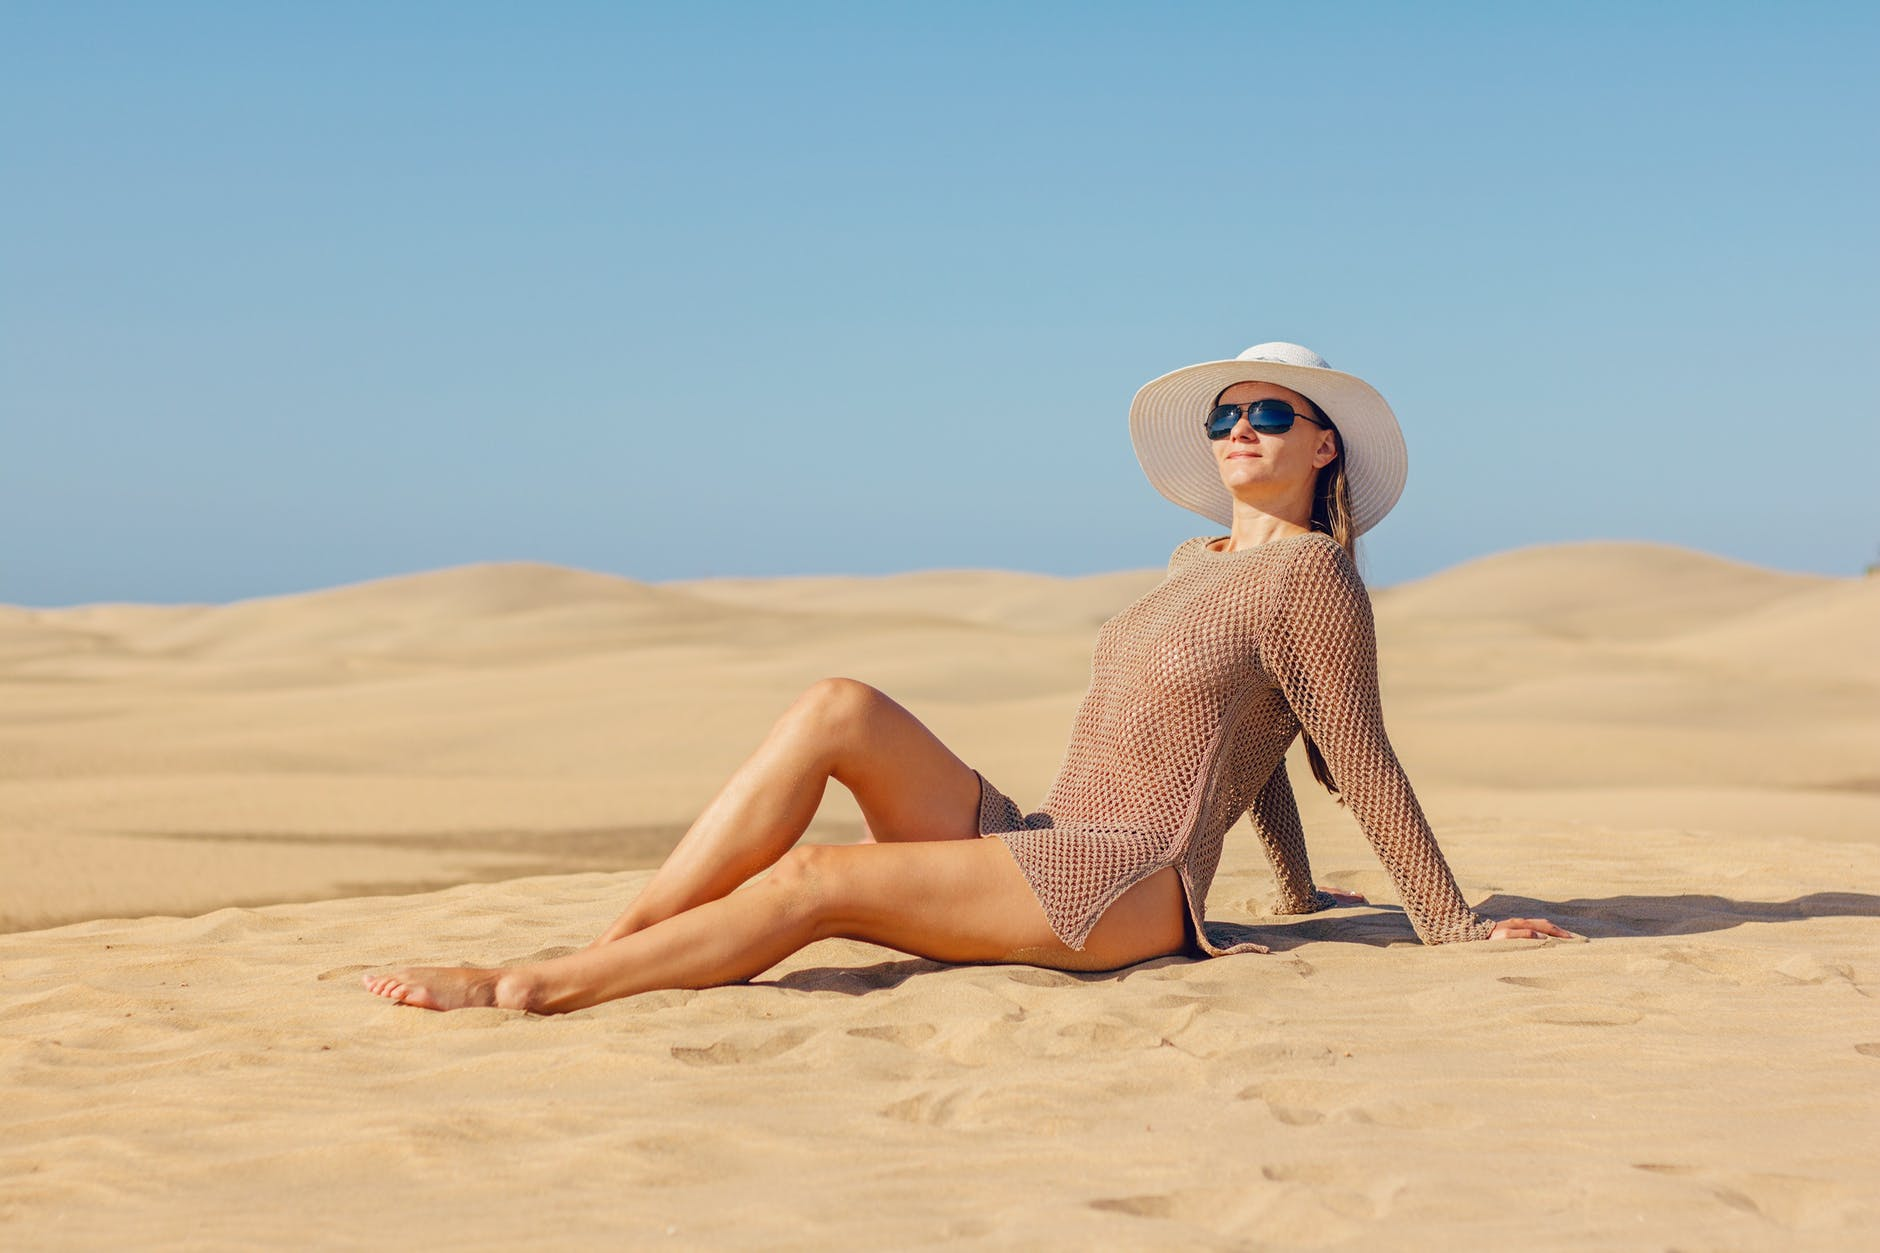 How To Get Rid of A Tan? – It's All Easy With Our Remedies Listing